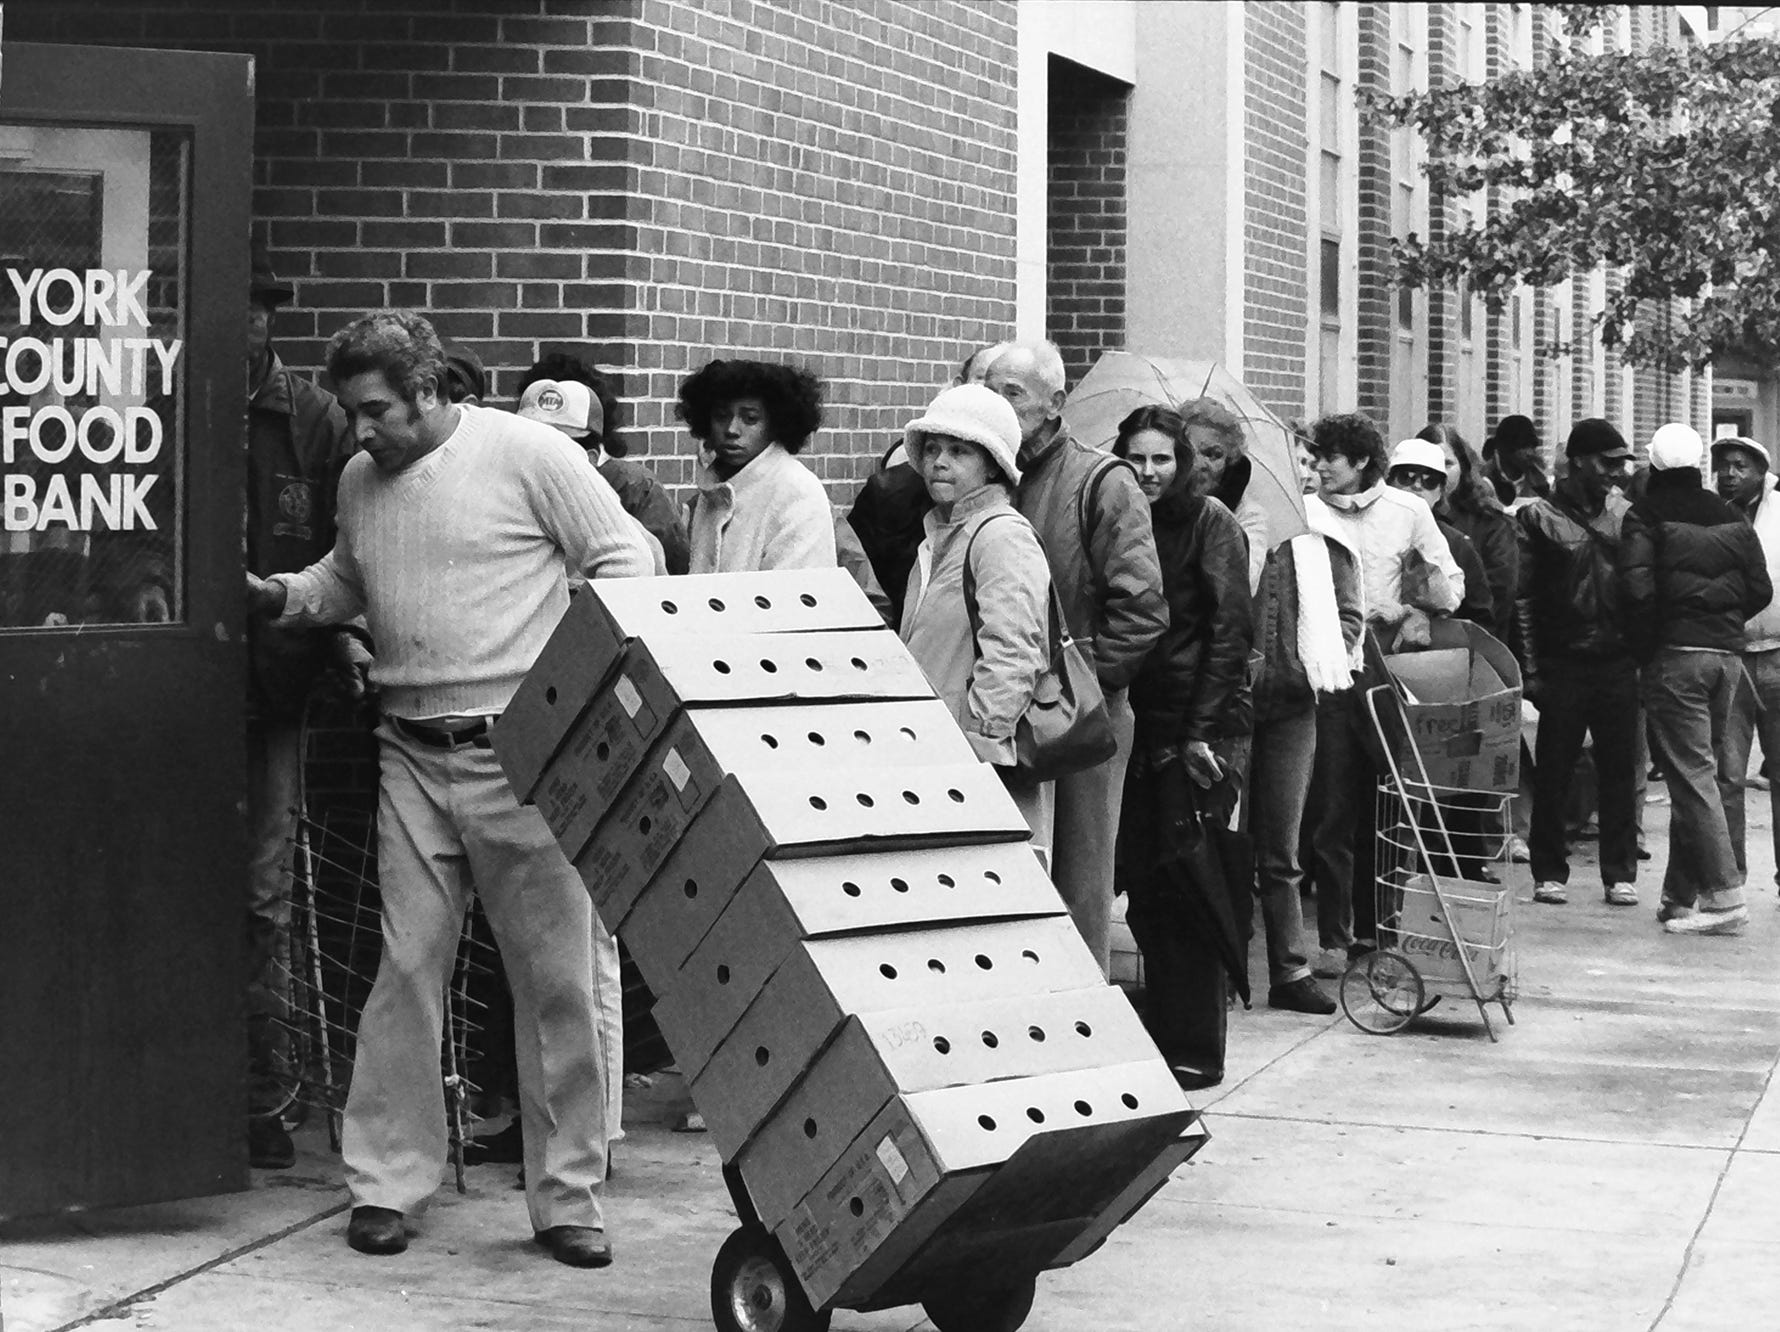 In 1985, people waited outside the Salvation Army at King and Duke streets in York for food and warm coats.